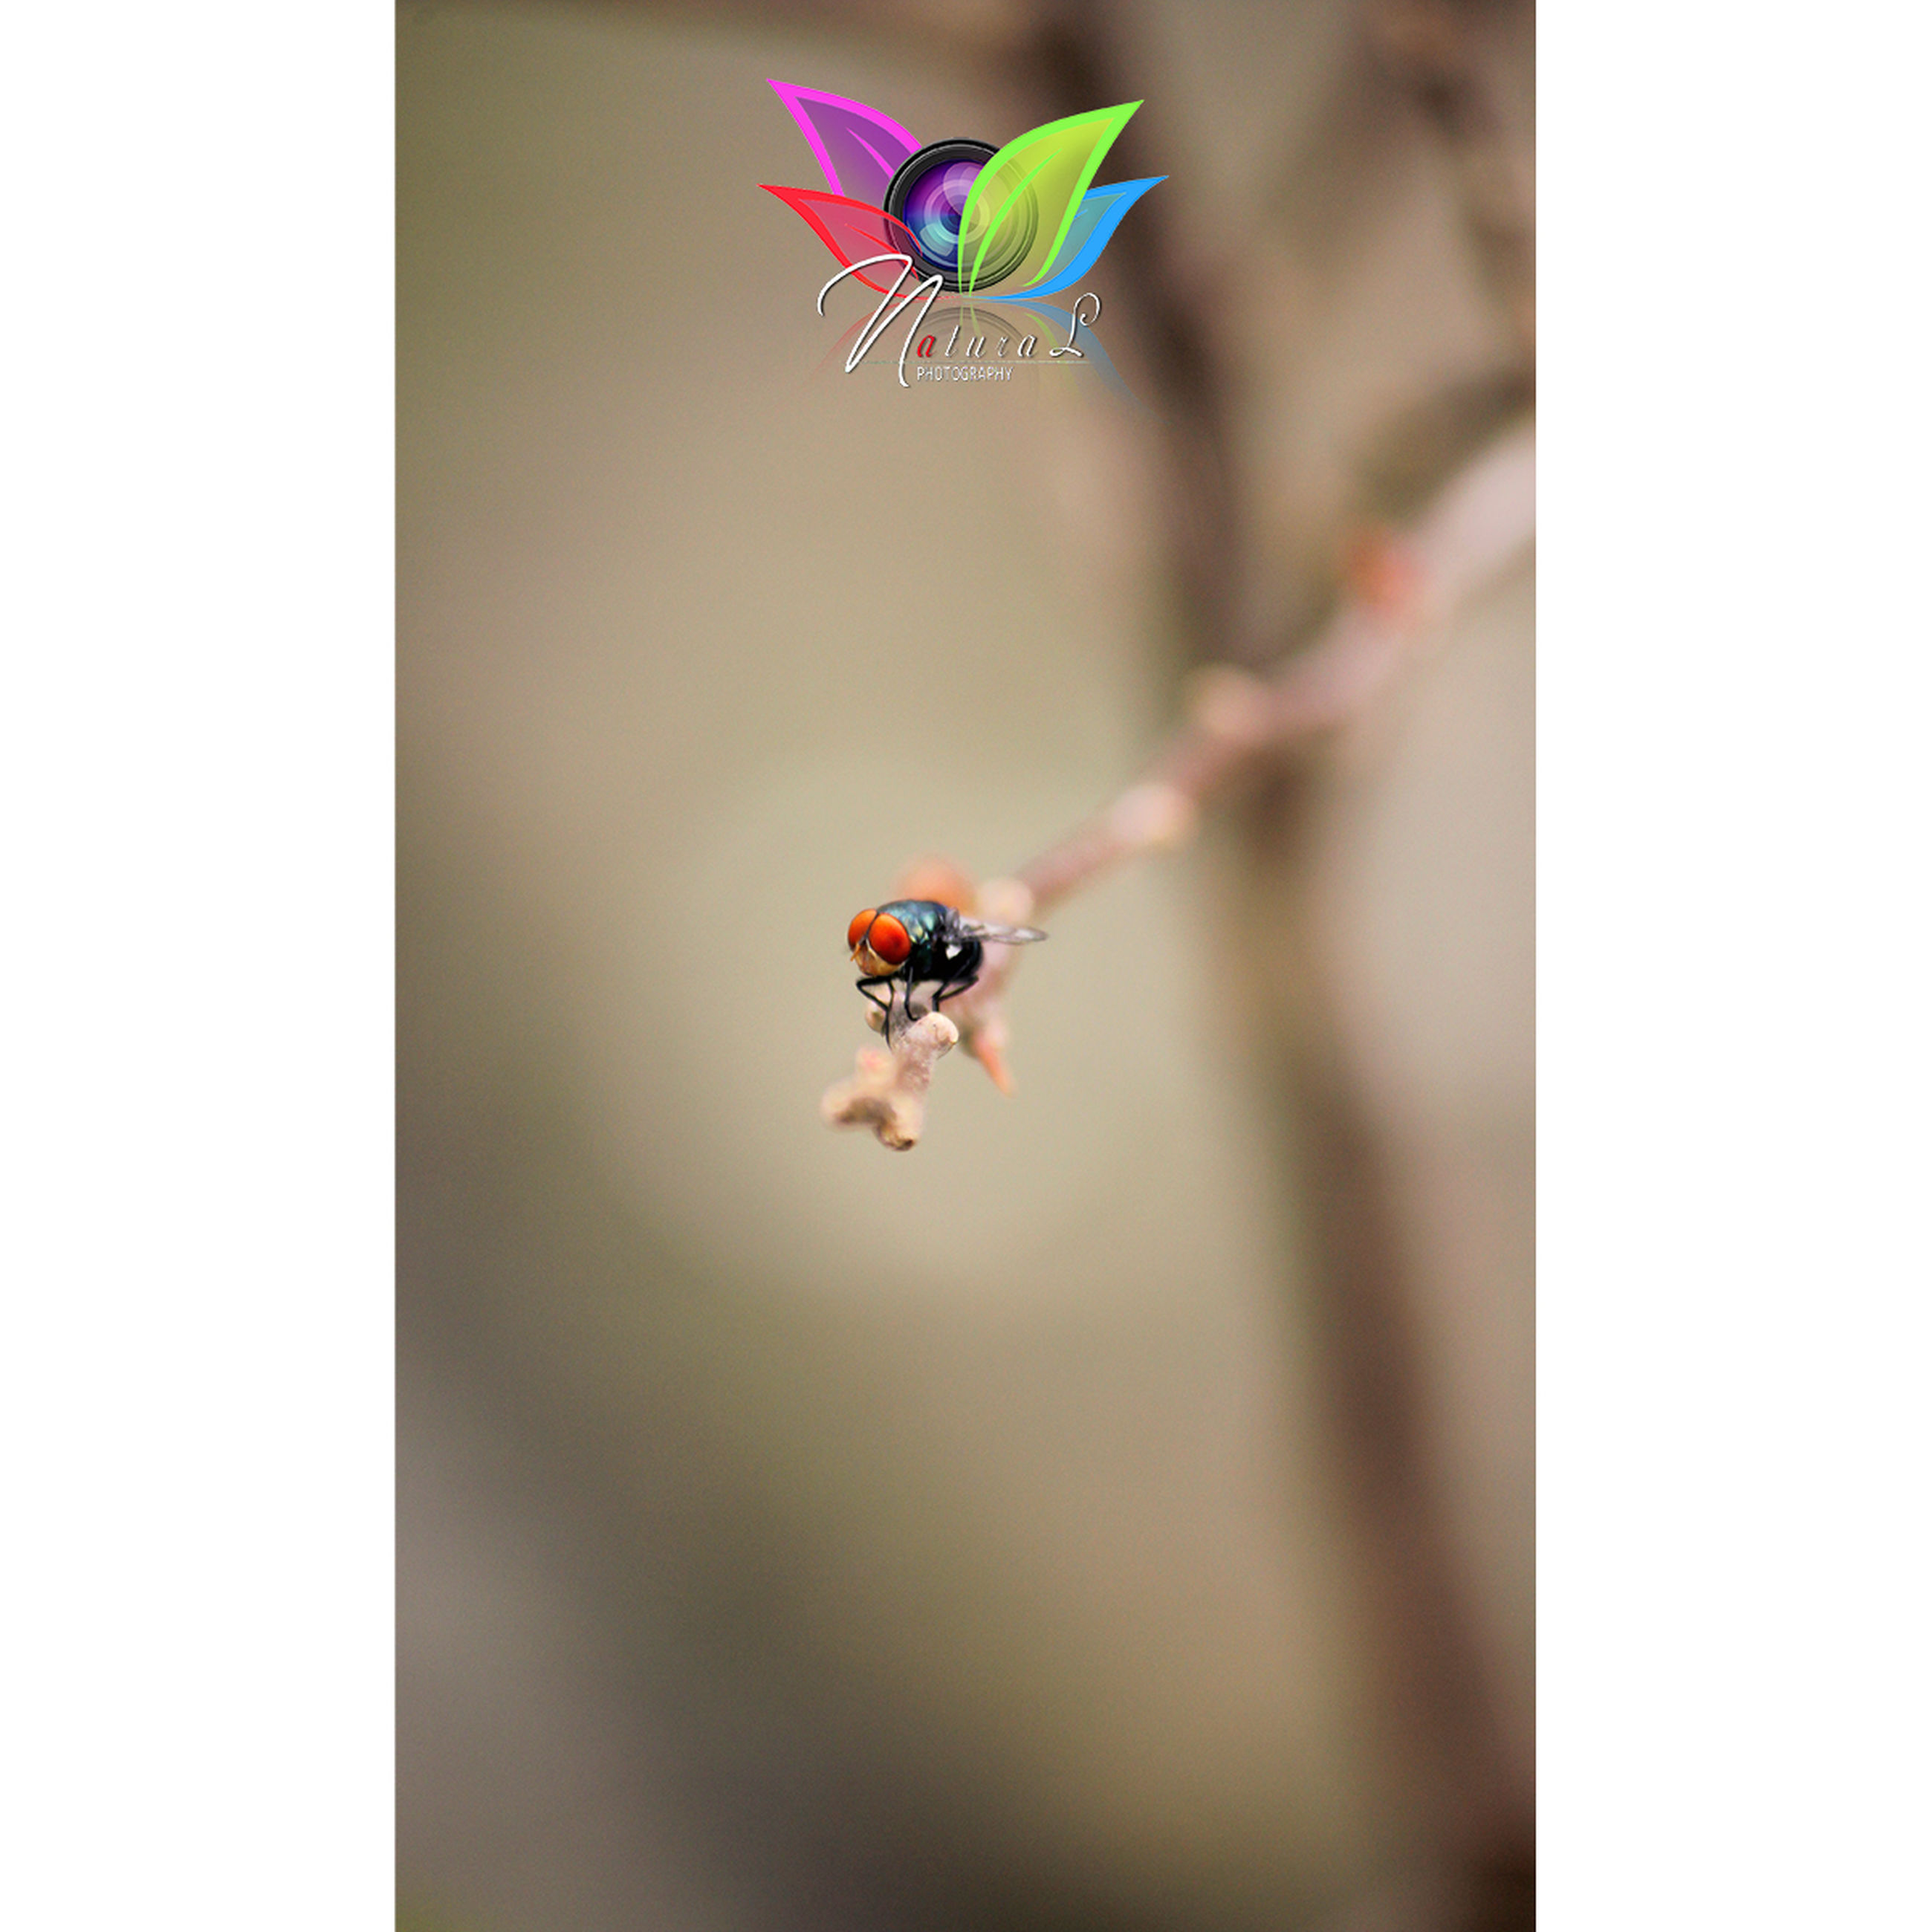 animal themes, insect, animals in the wild, one animal, focus on foreground, day, nature, close-up, no people, animal wildlife, buzzing, outdoors, beauty in nature, fragility